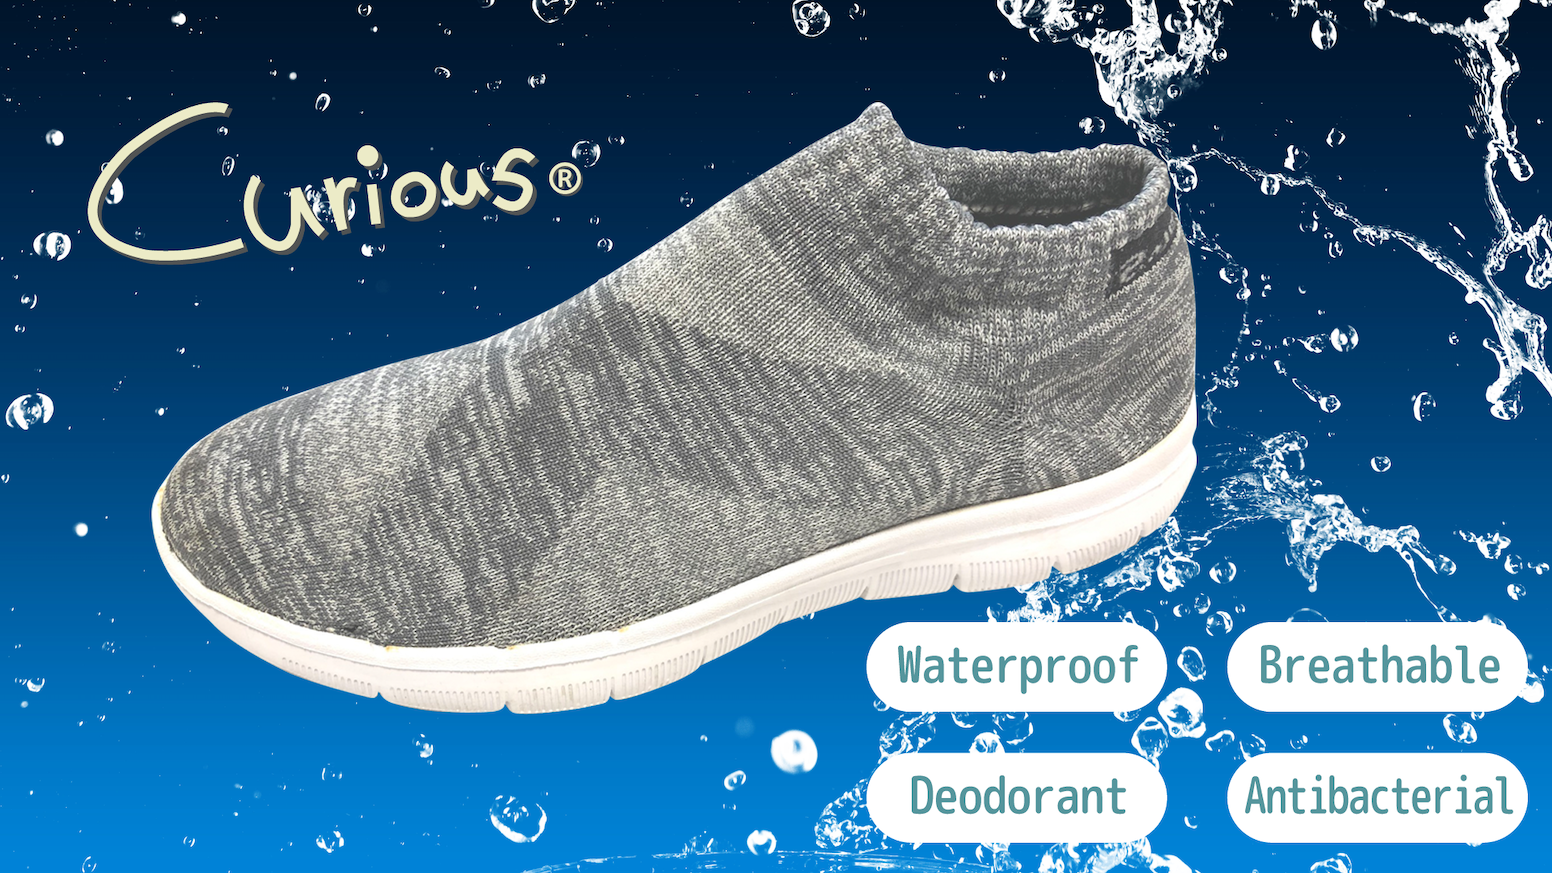 The World's first waterproof & deodorant knit shoes